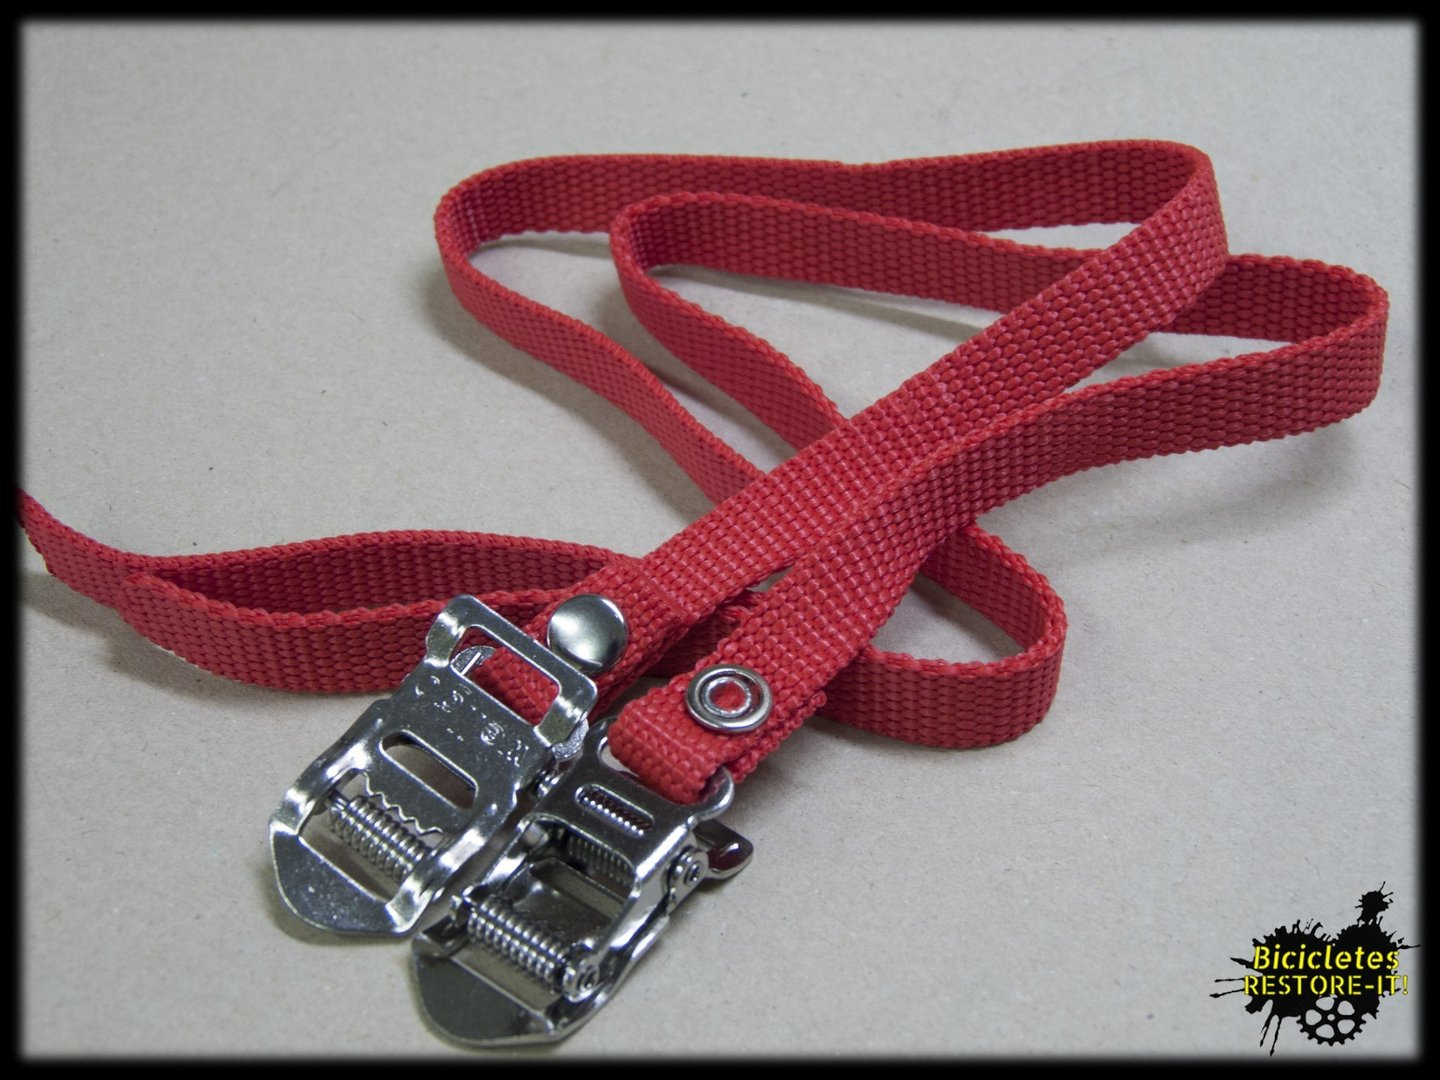 Correas calapies nylon rojo